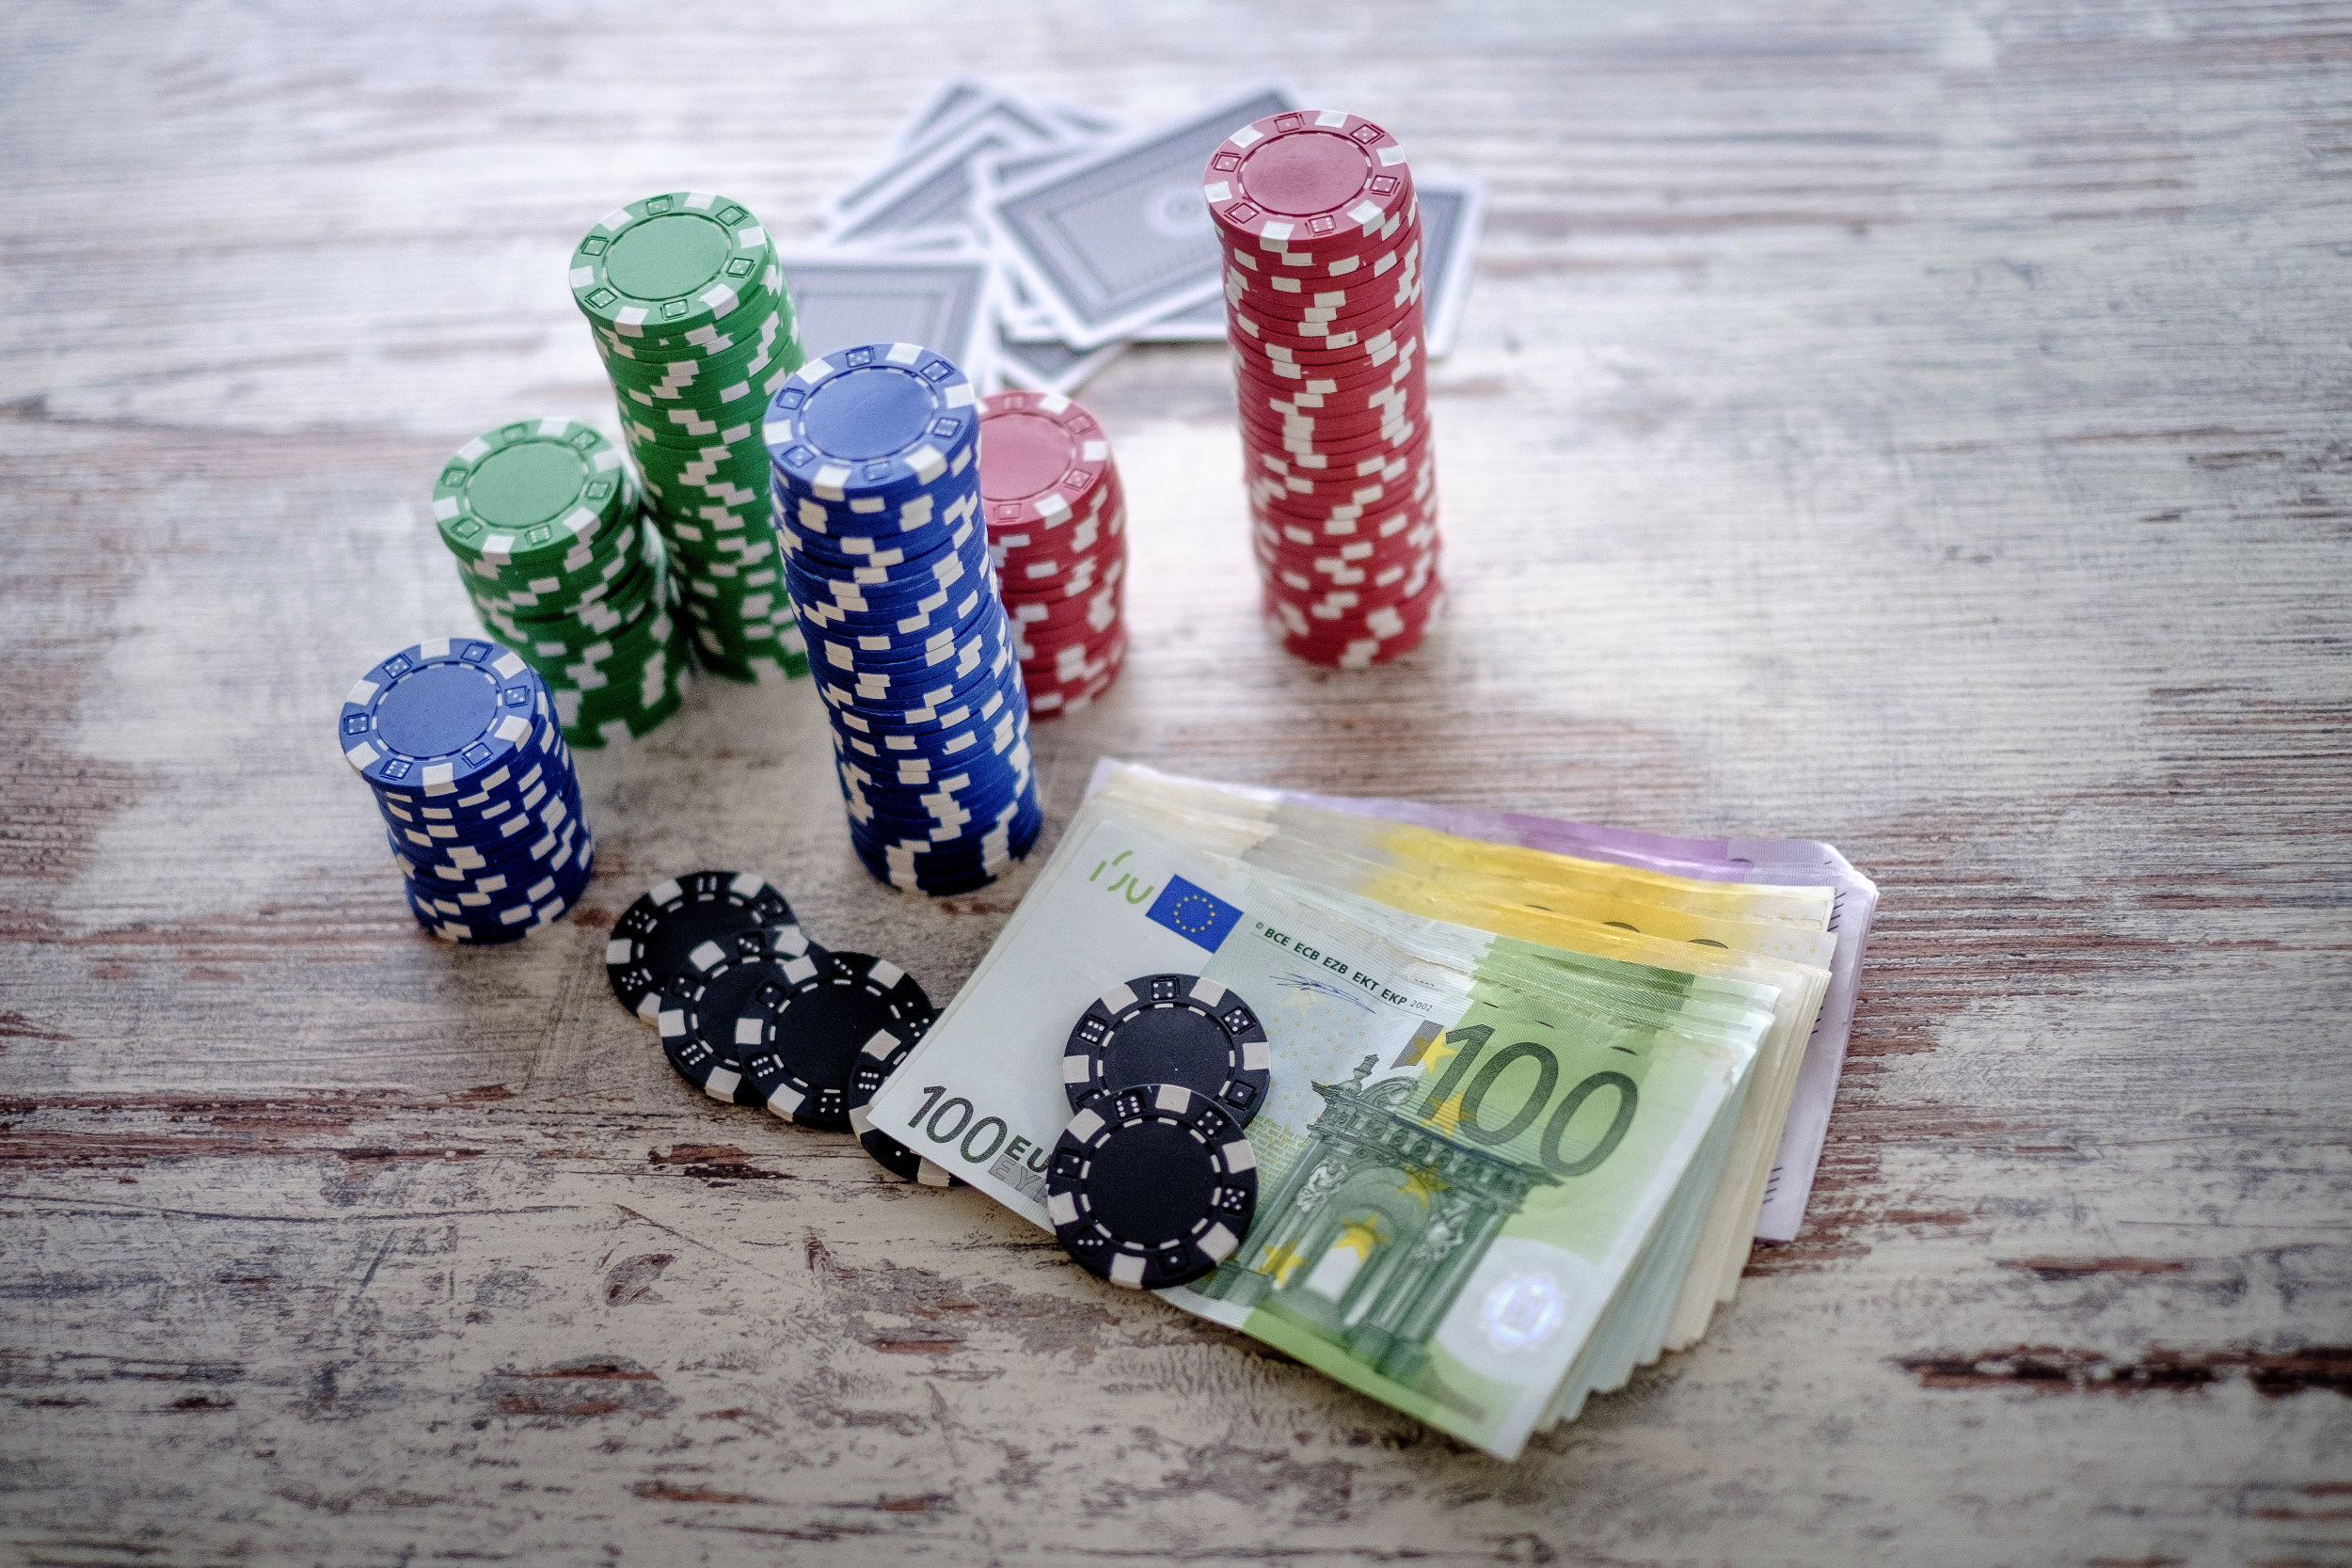 geld, money, poker, gokken, gamble, gokspel, fiches, euro, kaarten, cash, contant